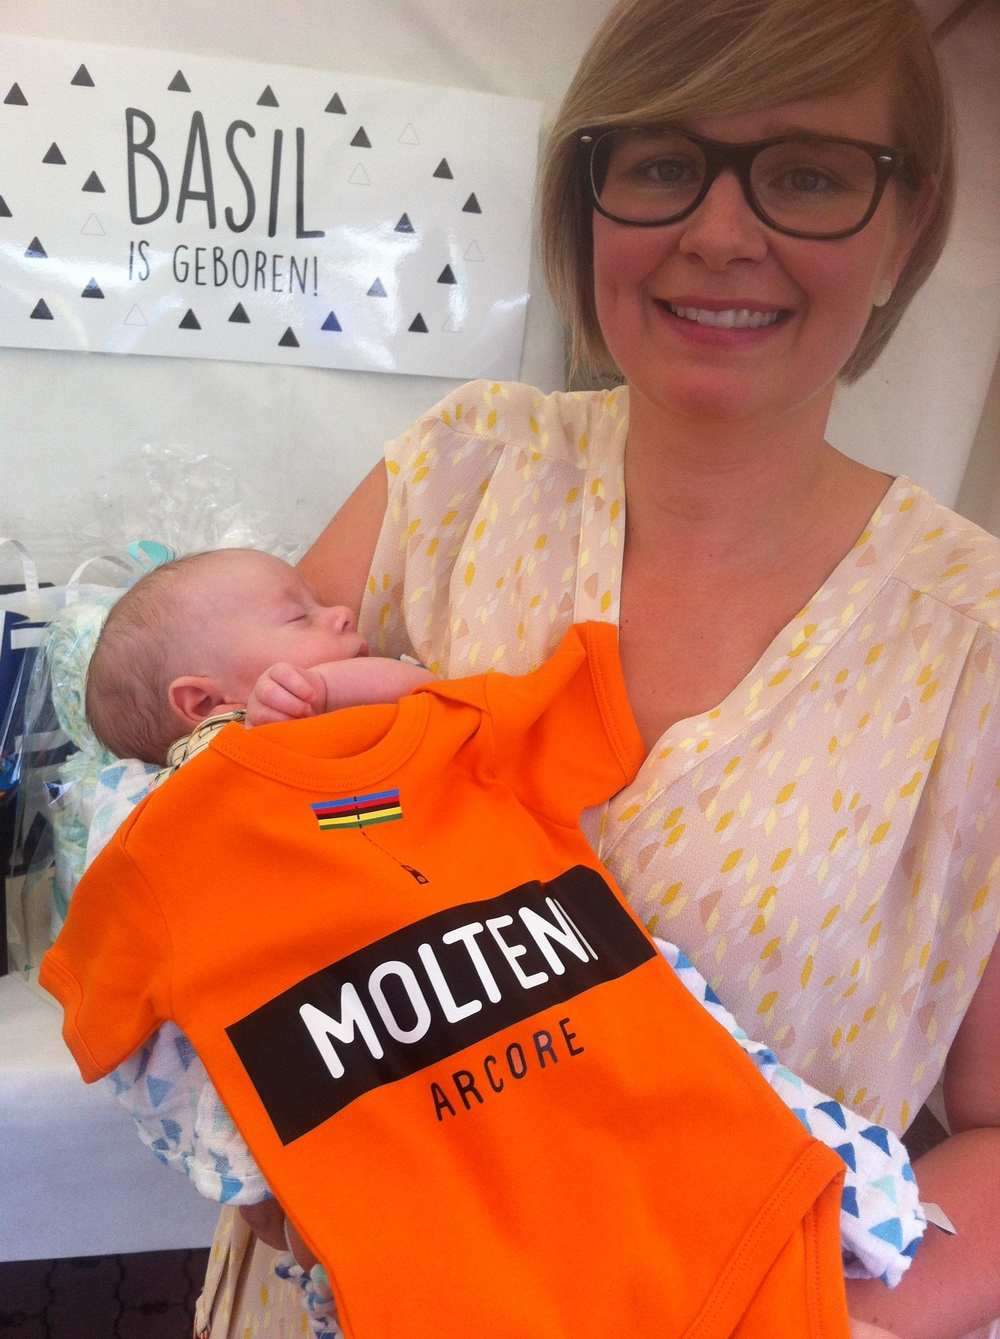 Basil & Jasmine Verhulst at the  babyborrel .  Basil was presented with his new Molteni Arcore pro team (baby size) jersey for the 2040 Tour of Flanders. Basil refused to comment on Molteni team salary negotiations.